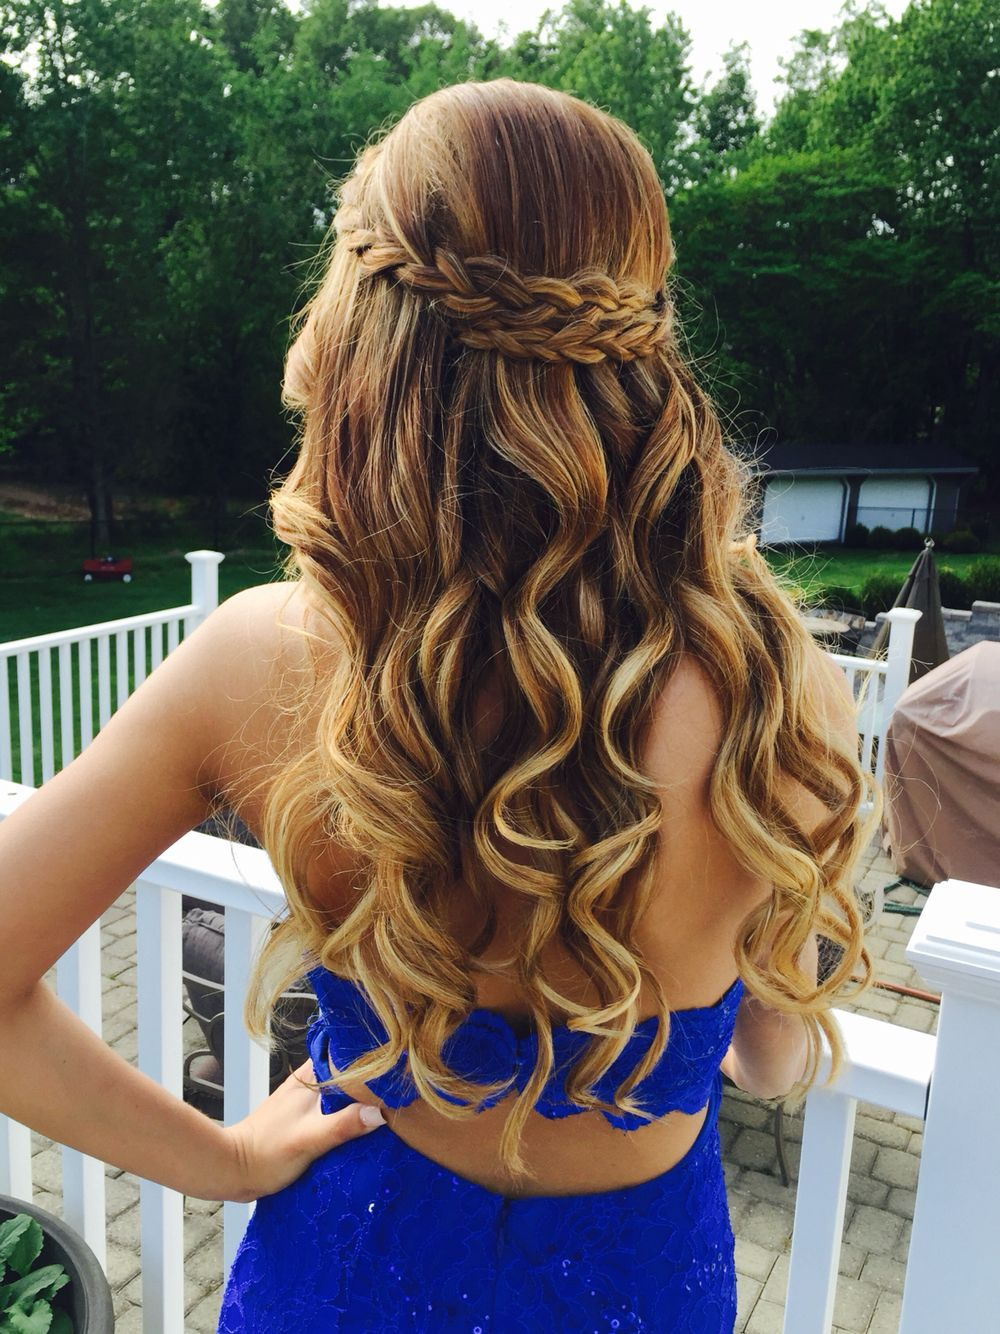 Prom Hair Half Up Half Down With Braid Idee De Coiffure Pour Cheveux Longs Bruns Et Boucles Parfait Pour Le Bal De Gra Hair Styles Long Hair Styles Hairstyle